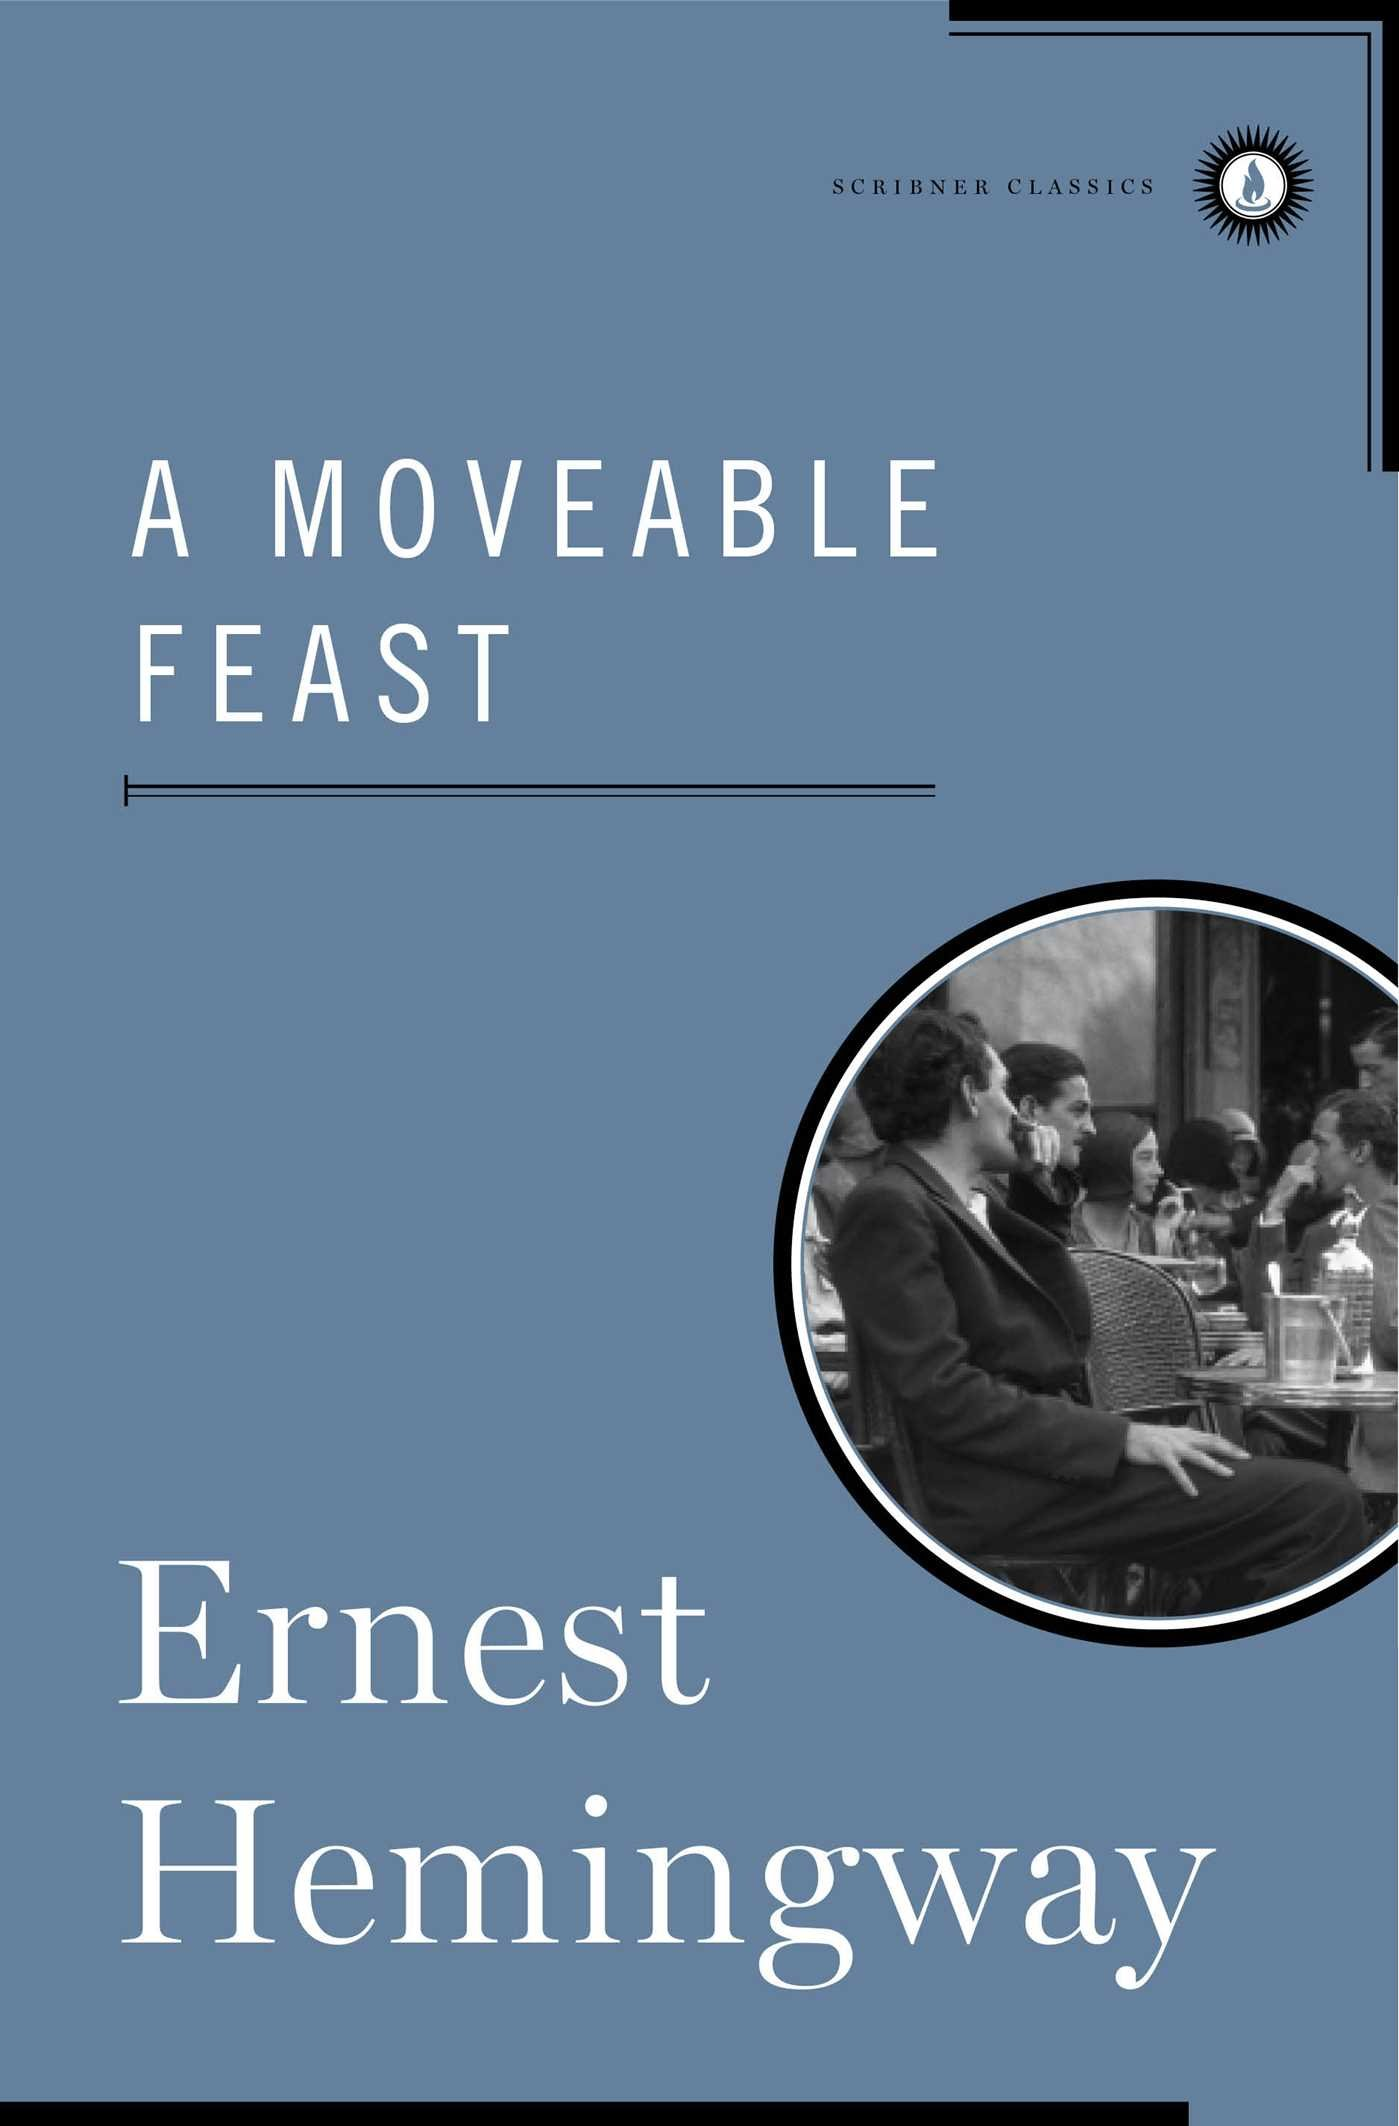 Reading List: A Moveable Feast